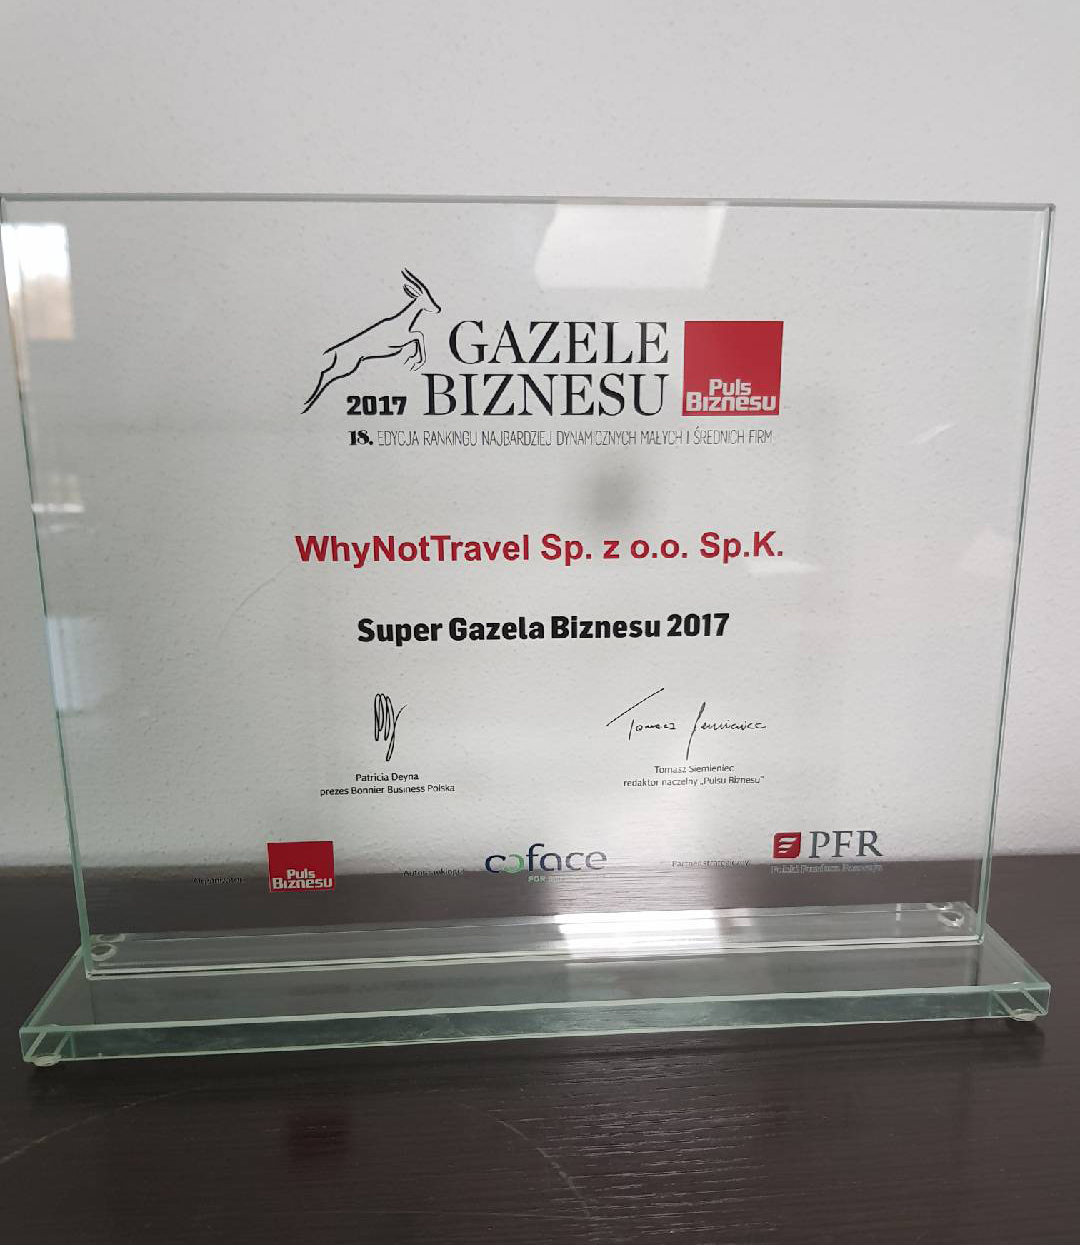 Super Gazela Biznesu